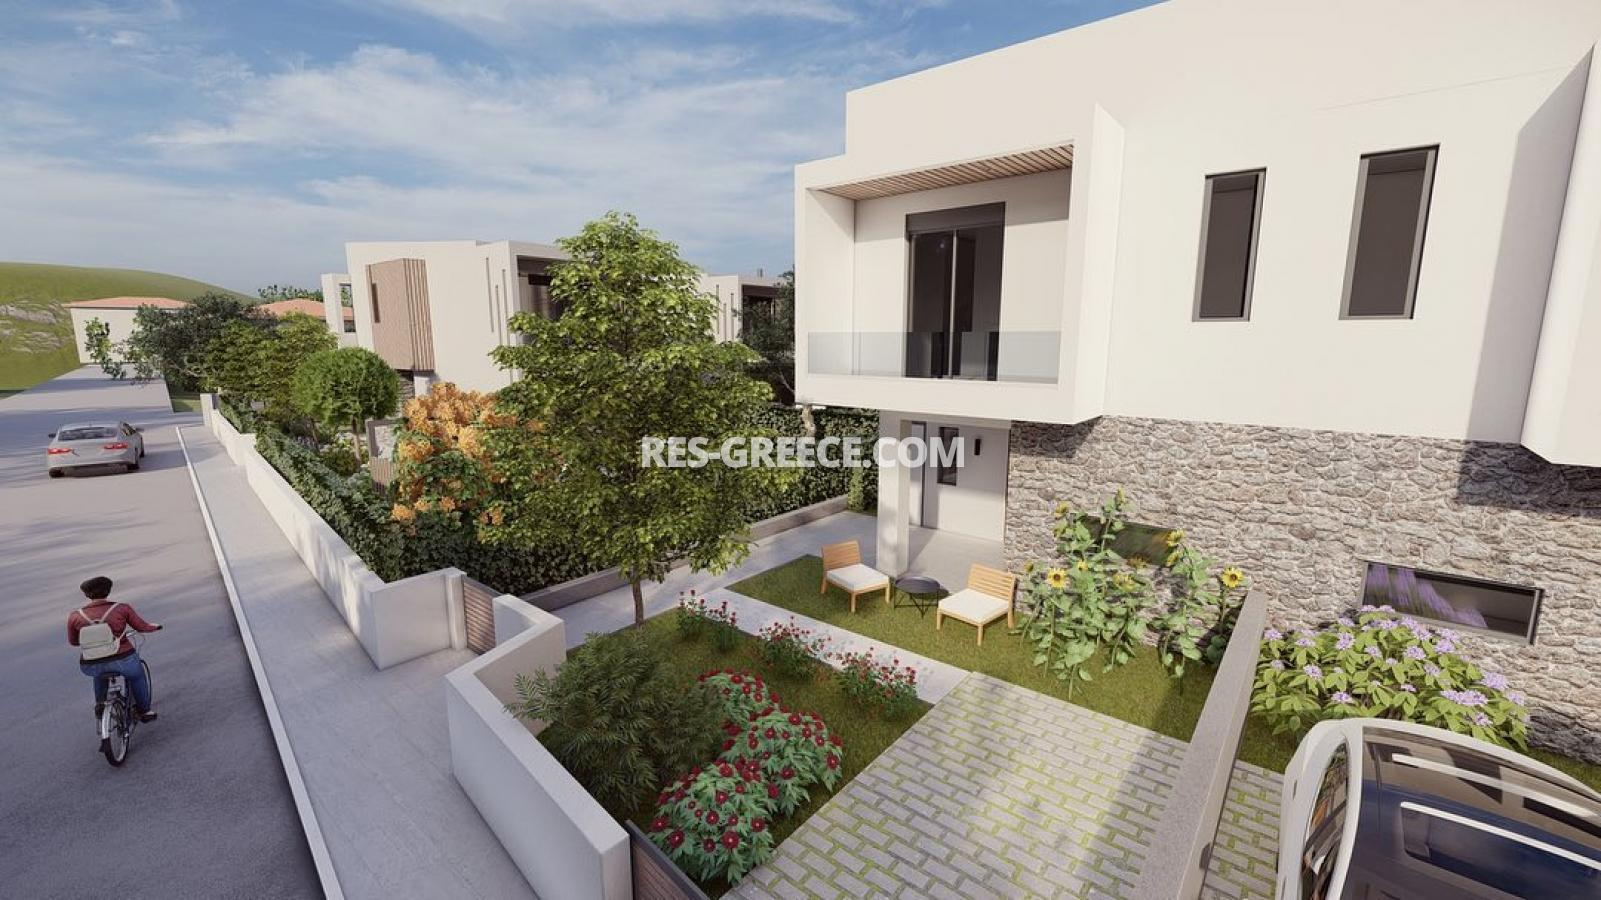 Anasa townhouses, Halkidiki-Sithonia, Greece - cottages in a new complex with the pool - Photo 5